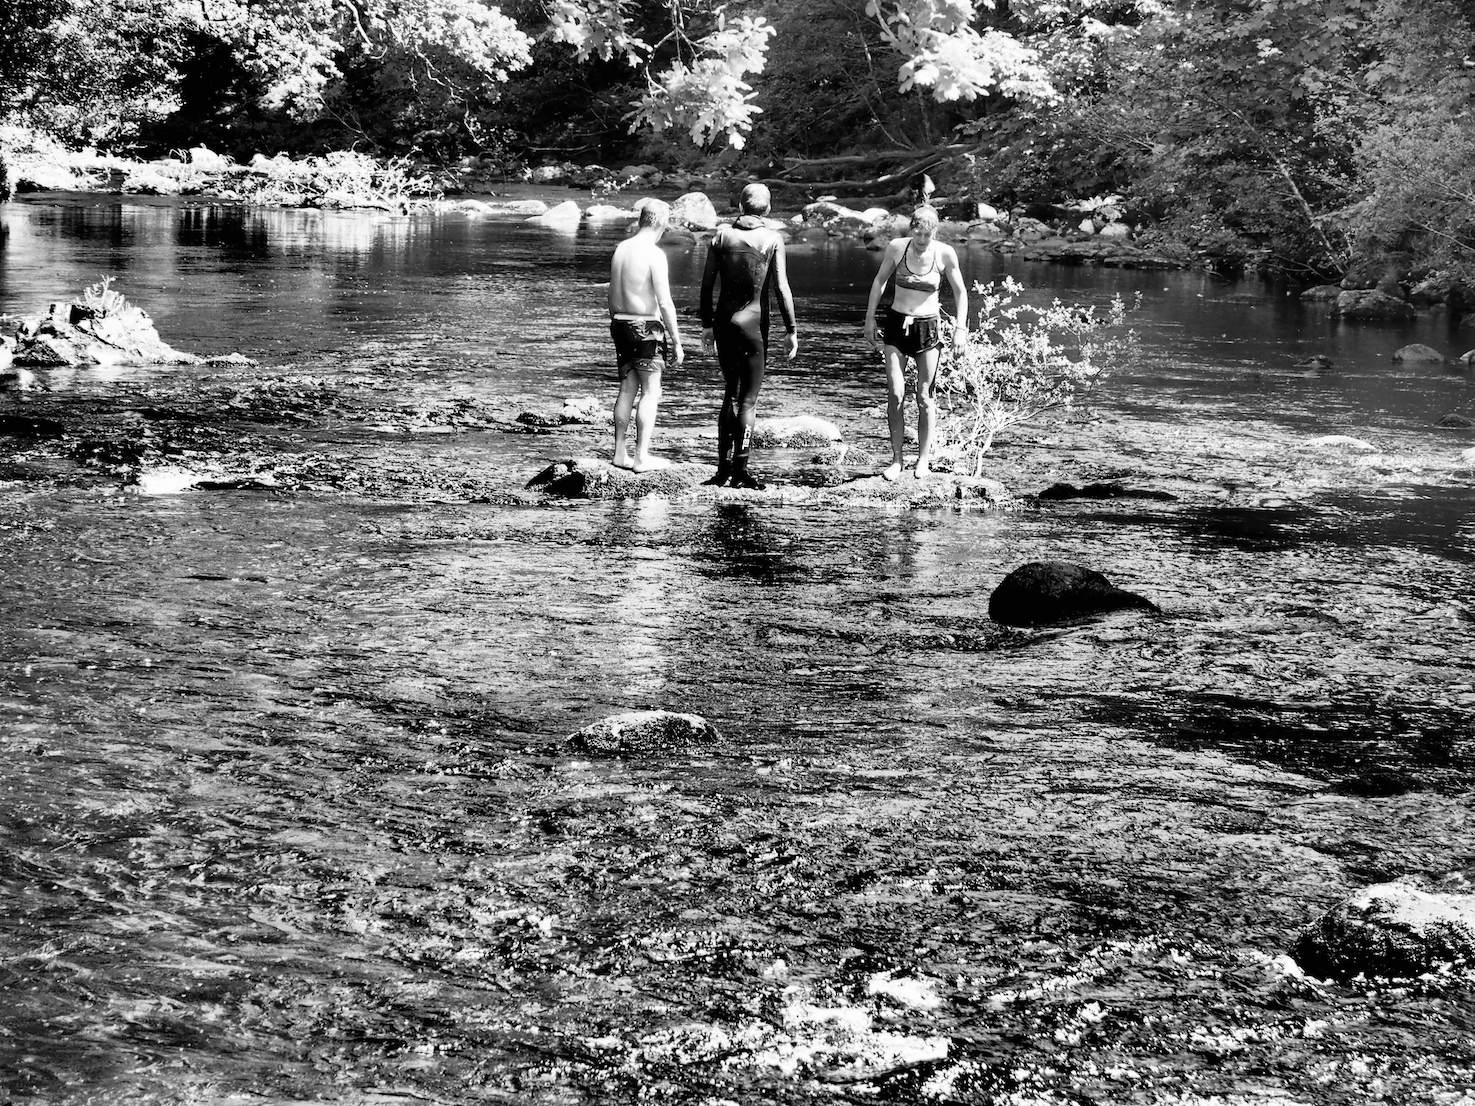 The swimmers contemplate the river